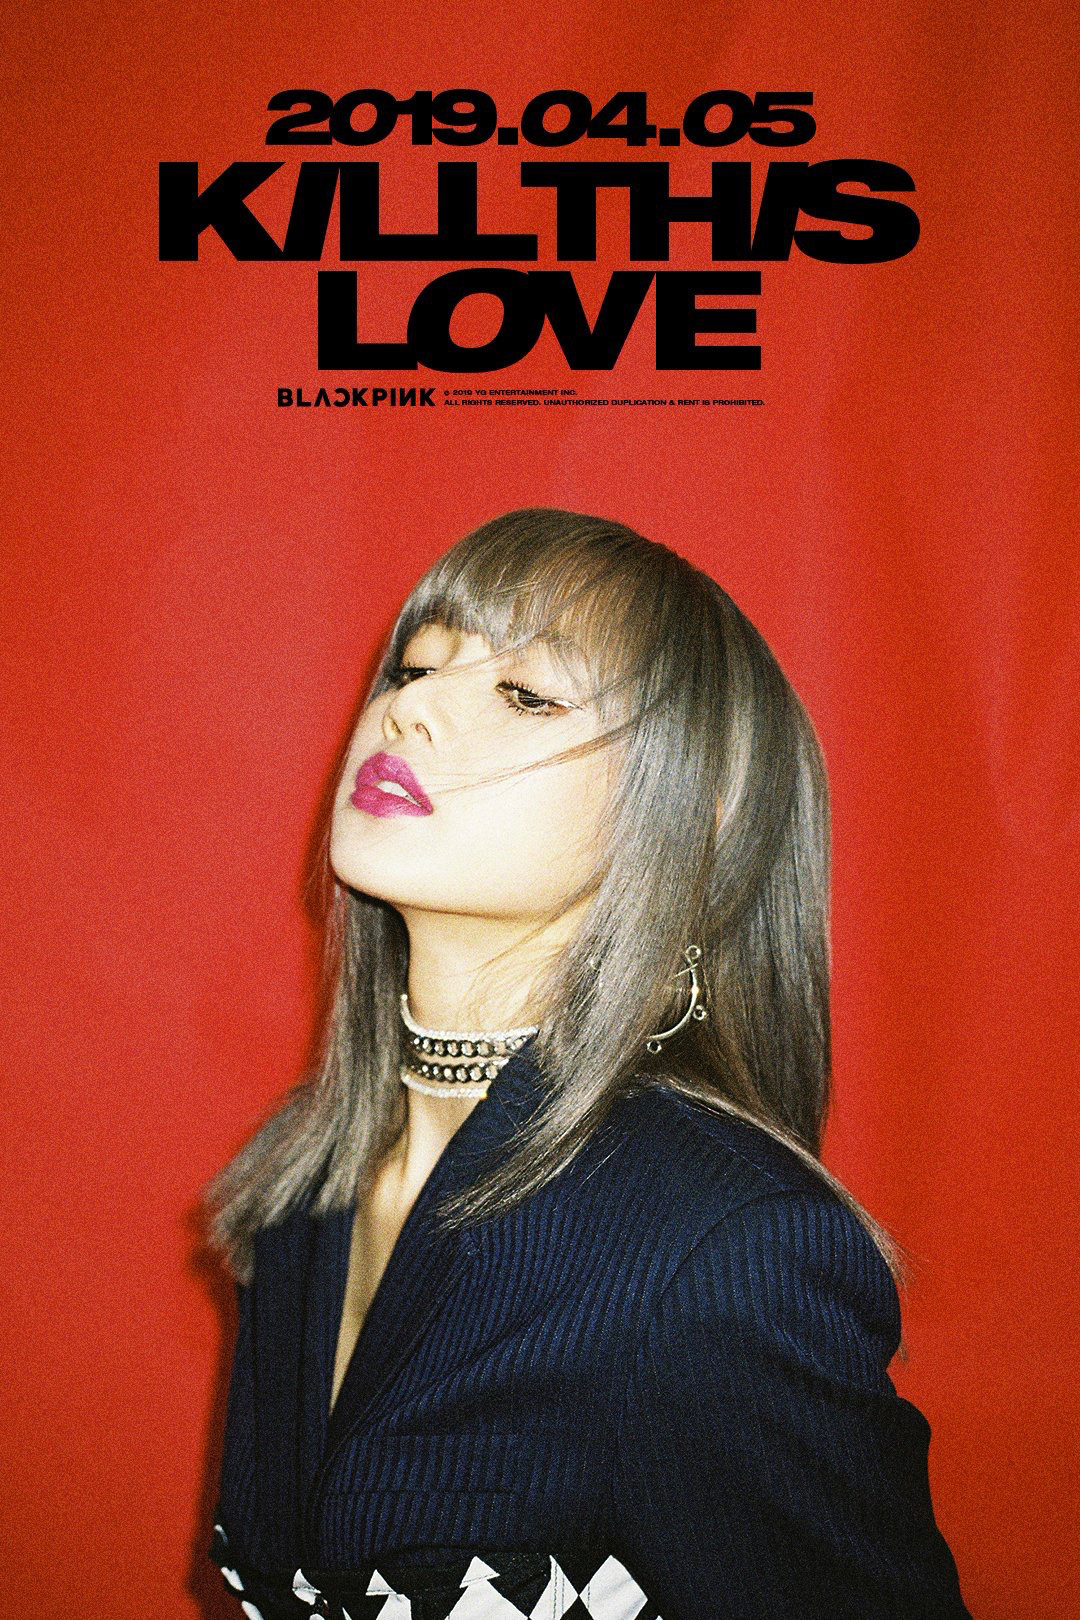 BLACKPINK Looks So Different in Their KILL THIS LOVE Posters